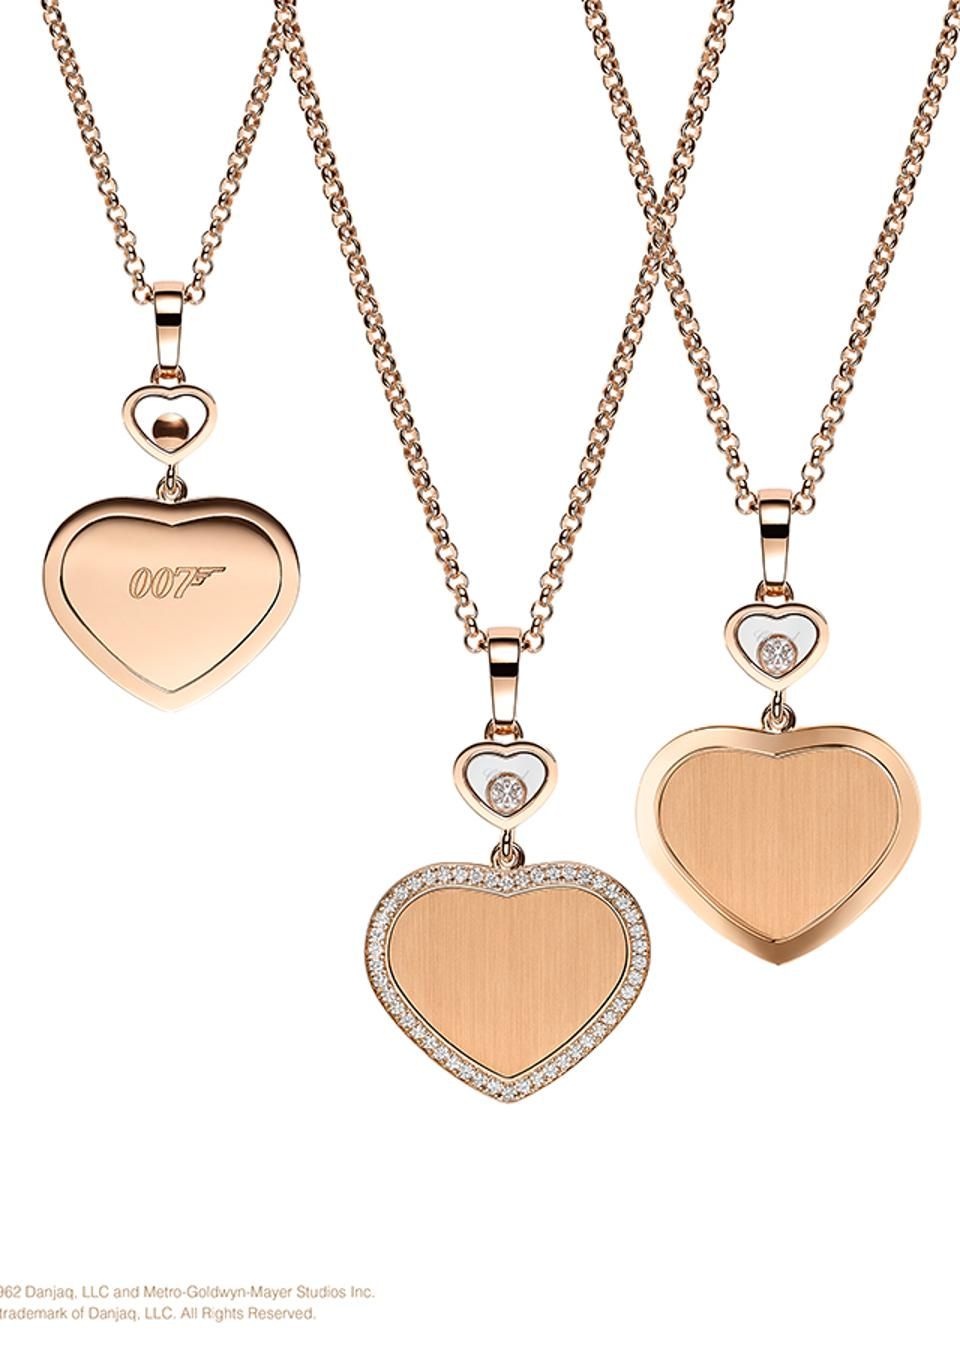 Pendants from the Chopard Happy Hearts – Golden Hearts collection, as a sponsor of the Bond film No Time to Die.